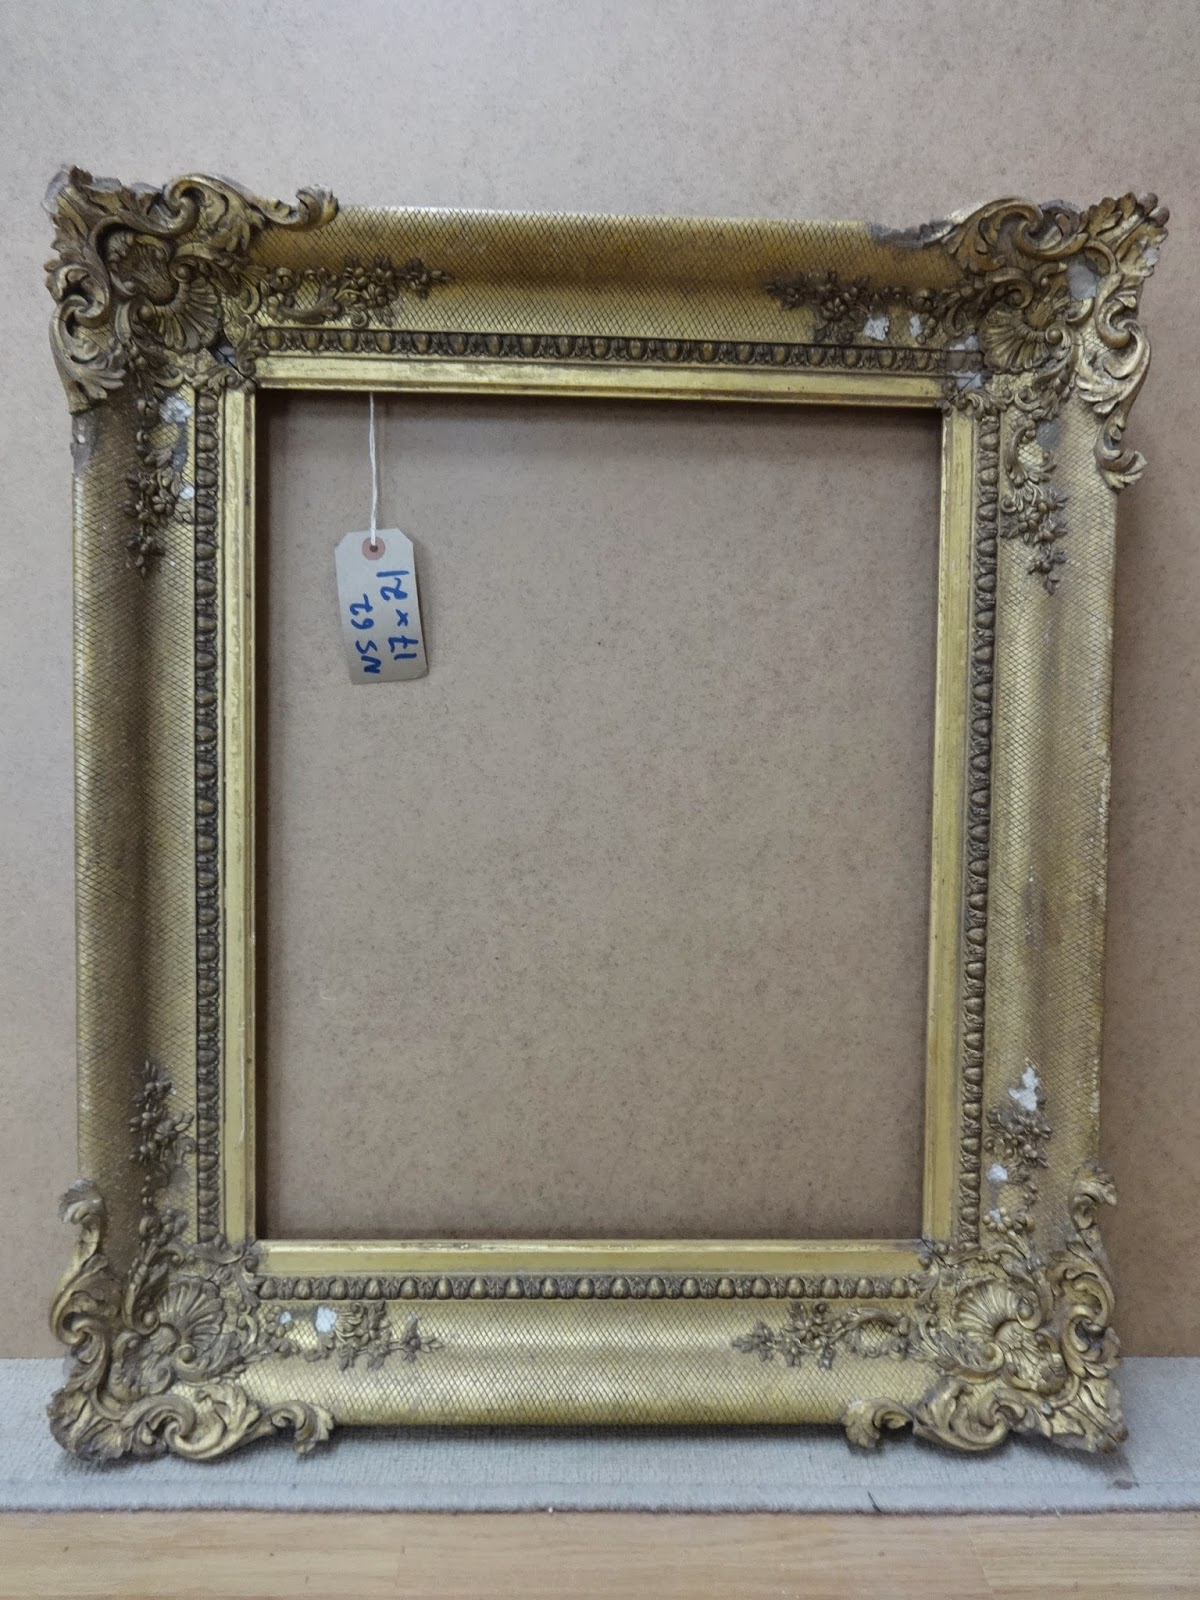 Antique Frame Sale: Victorian Frame with Ornate Rococo Corners